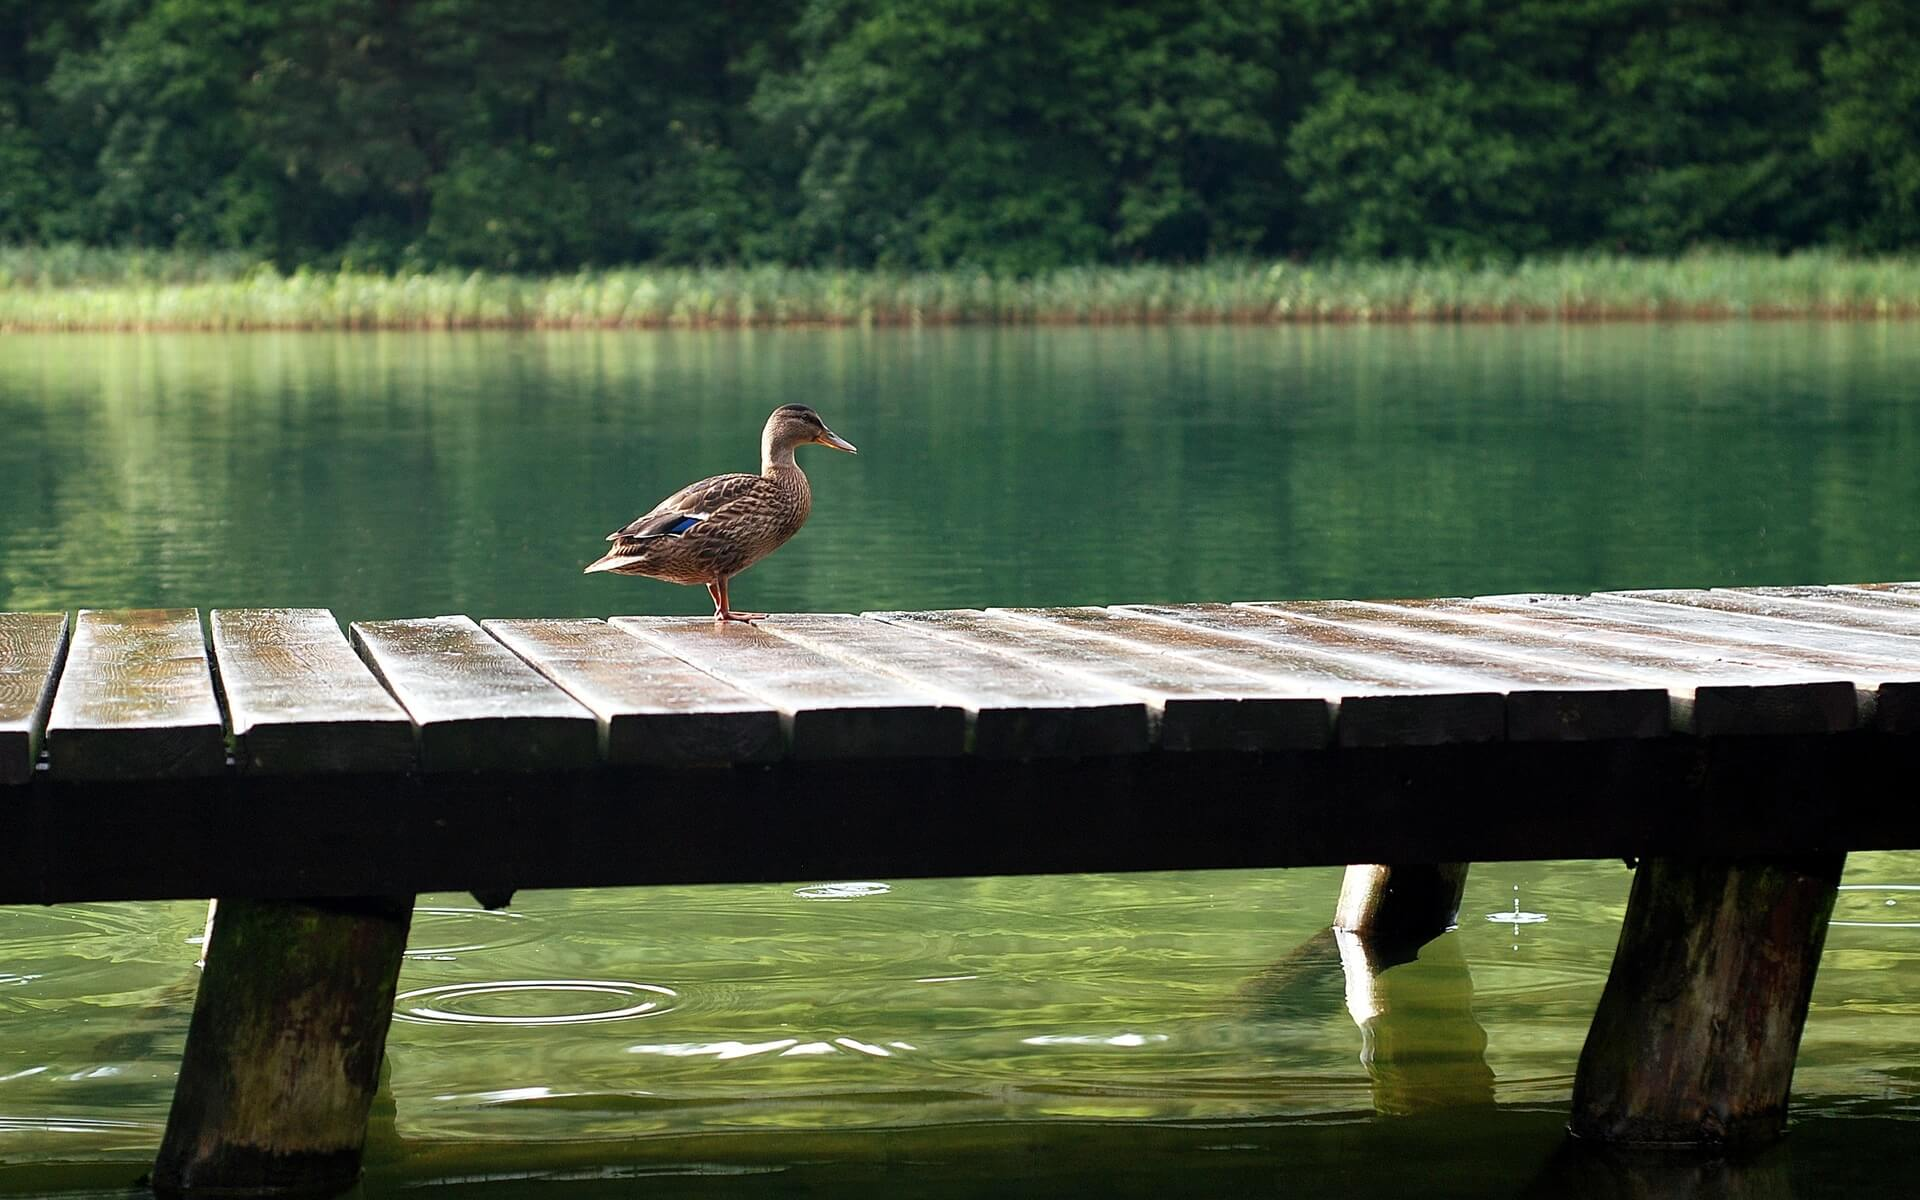 duck on lake pier wallpaper background